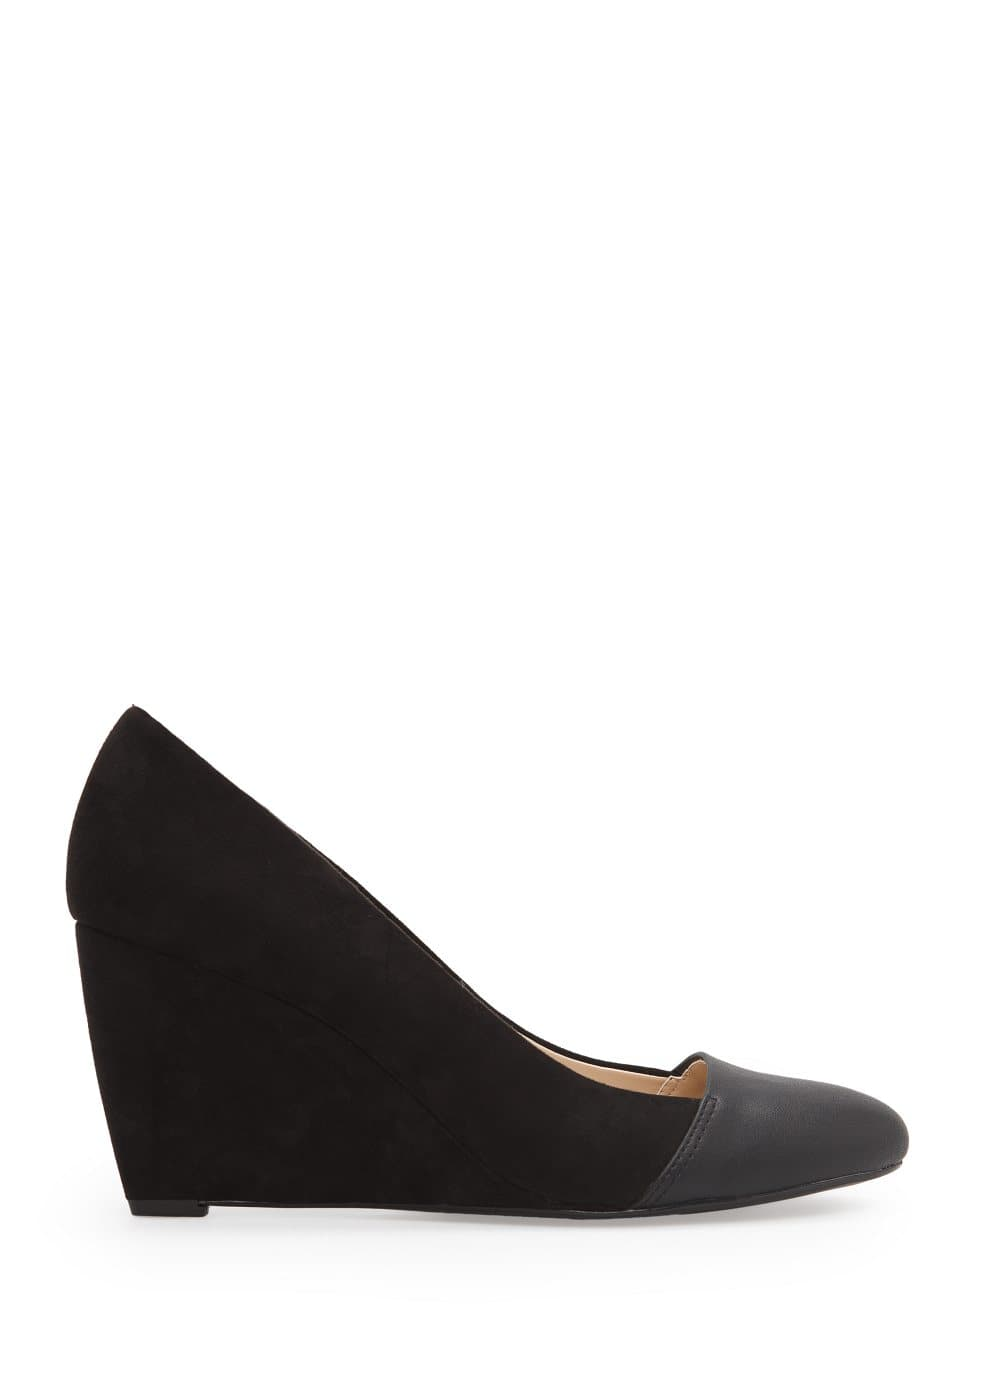 Faux suede wedge shoes